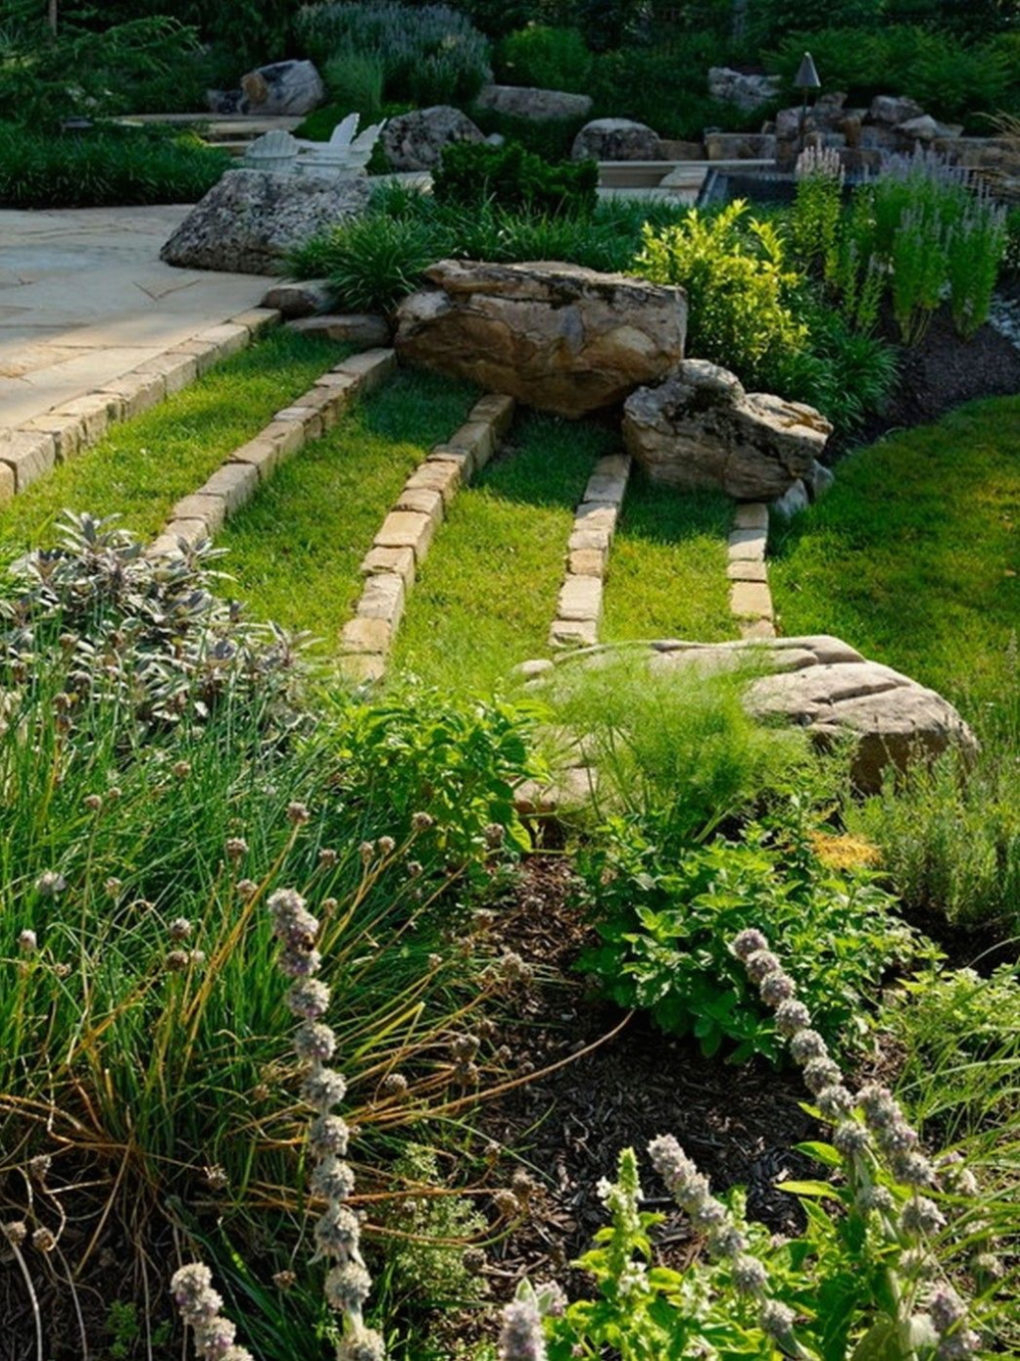 Backyard Fancy Sloped Backyard Design For Your House Concept intended for 10 Genius Ways How to Upgrade Sloped Backyard Ideas